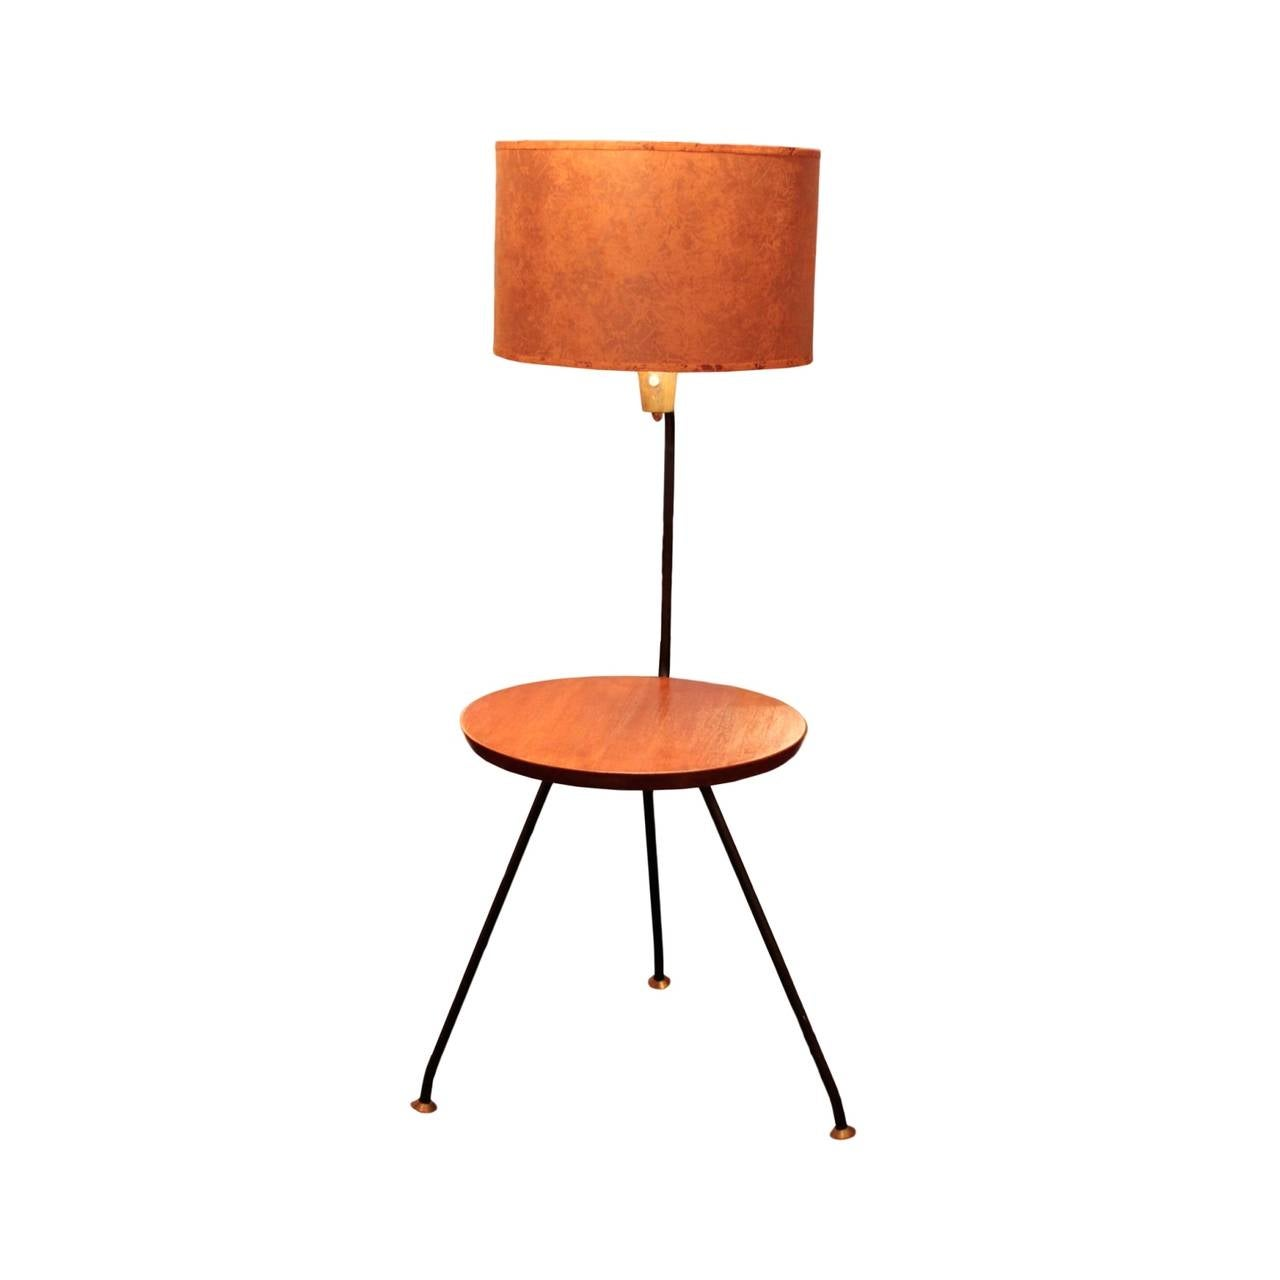 american midcentury modern lamp with table by luther conover for  - american midcentury modern lamp with table by luther conover